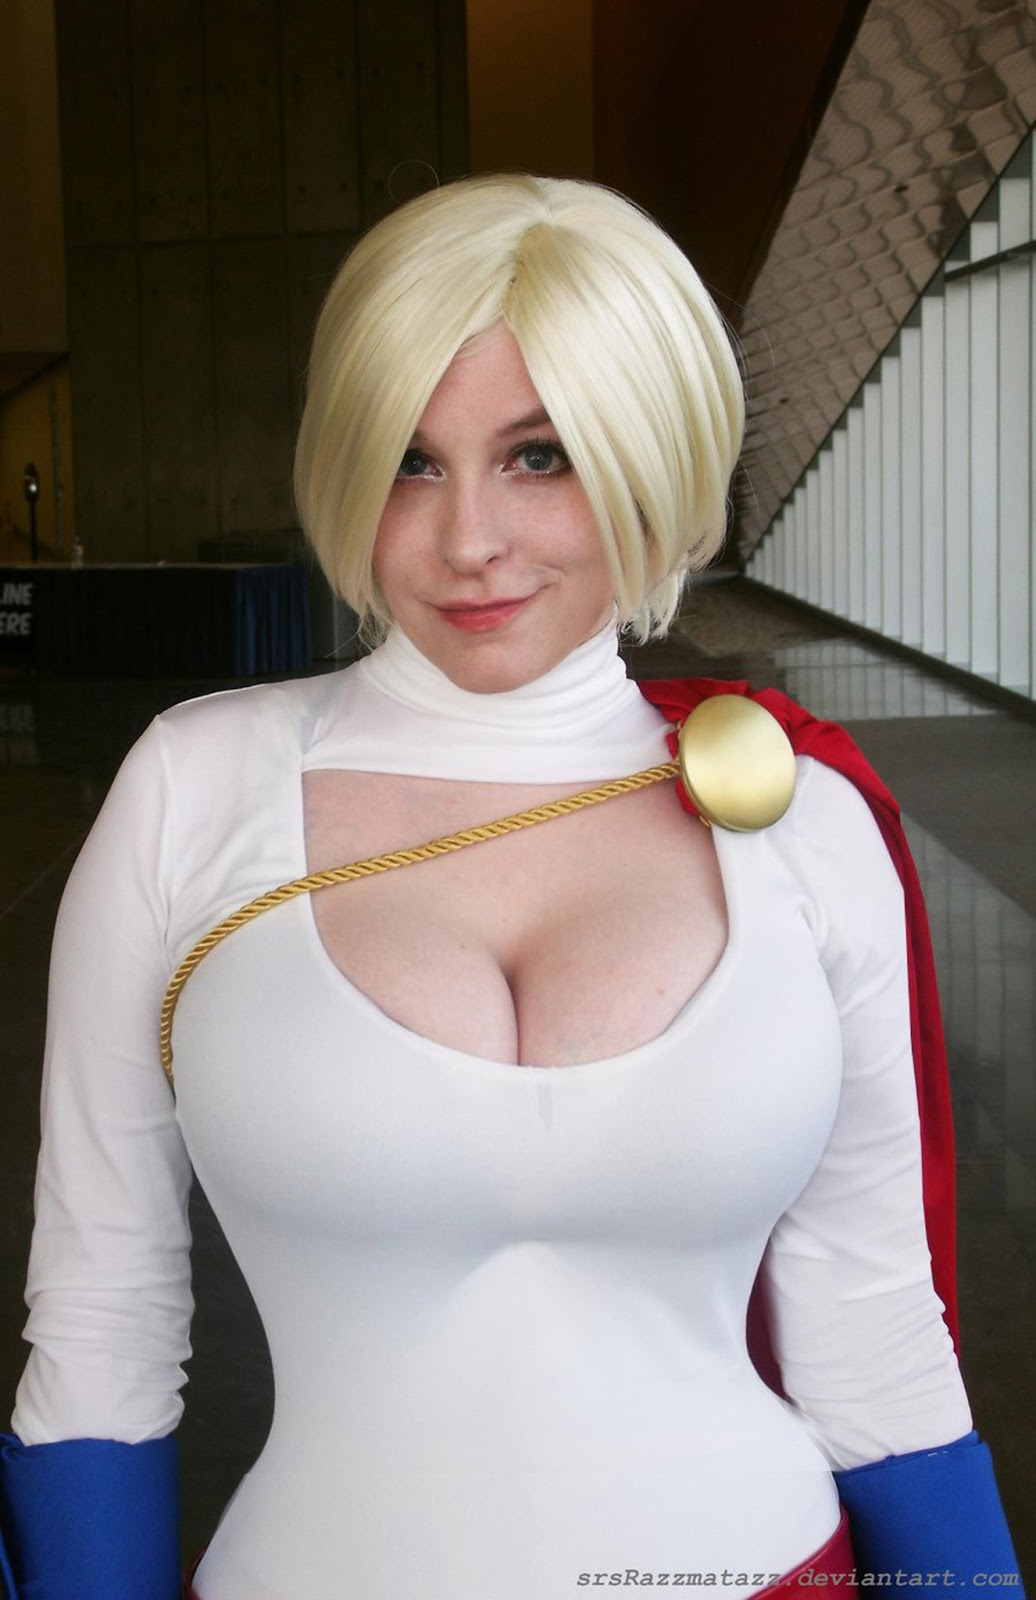 Big Super Tits 23